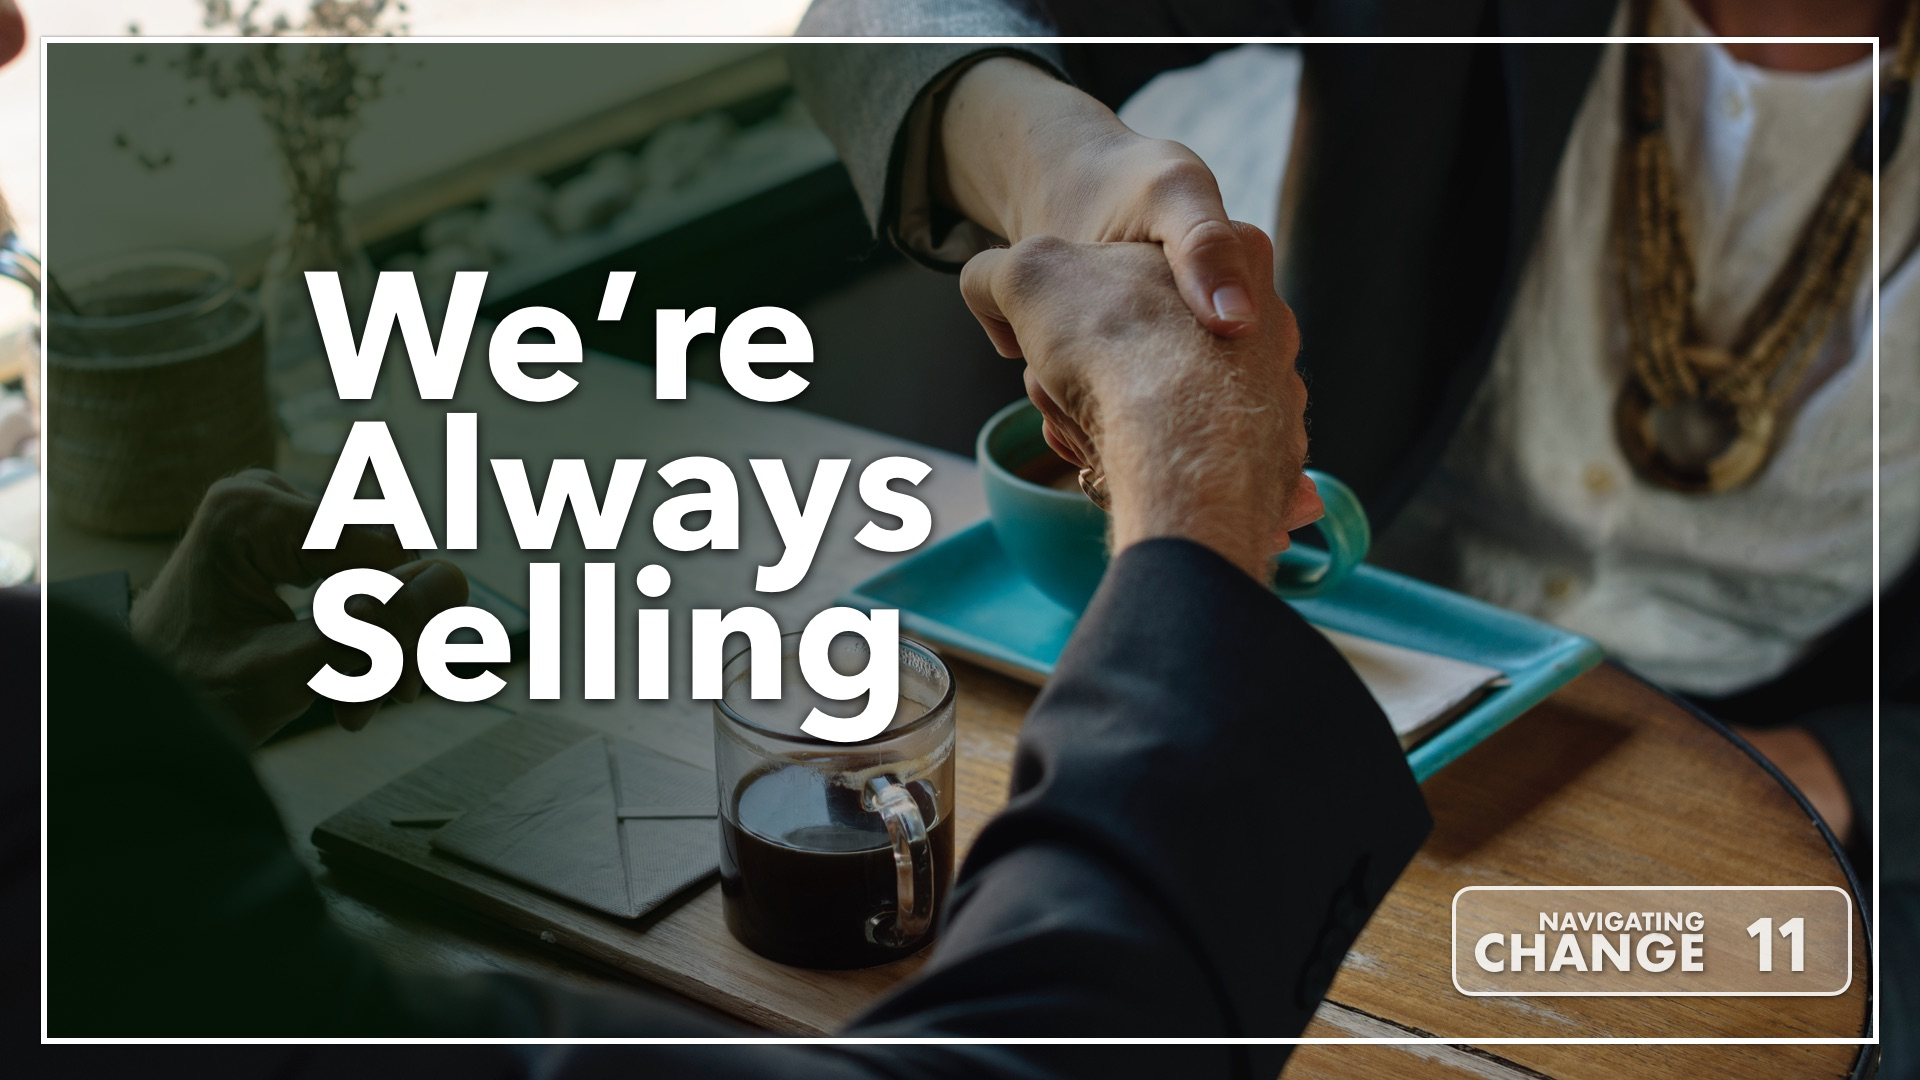 Listen to We're Always Selling on Navigating Change The Education Podcast